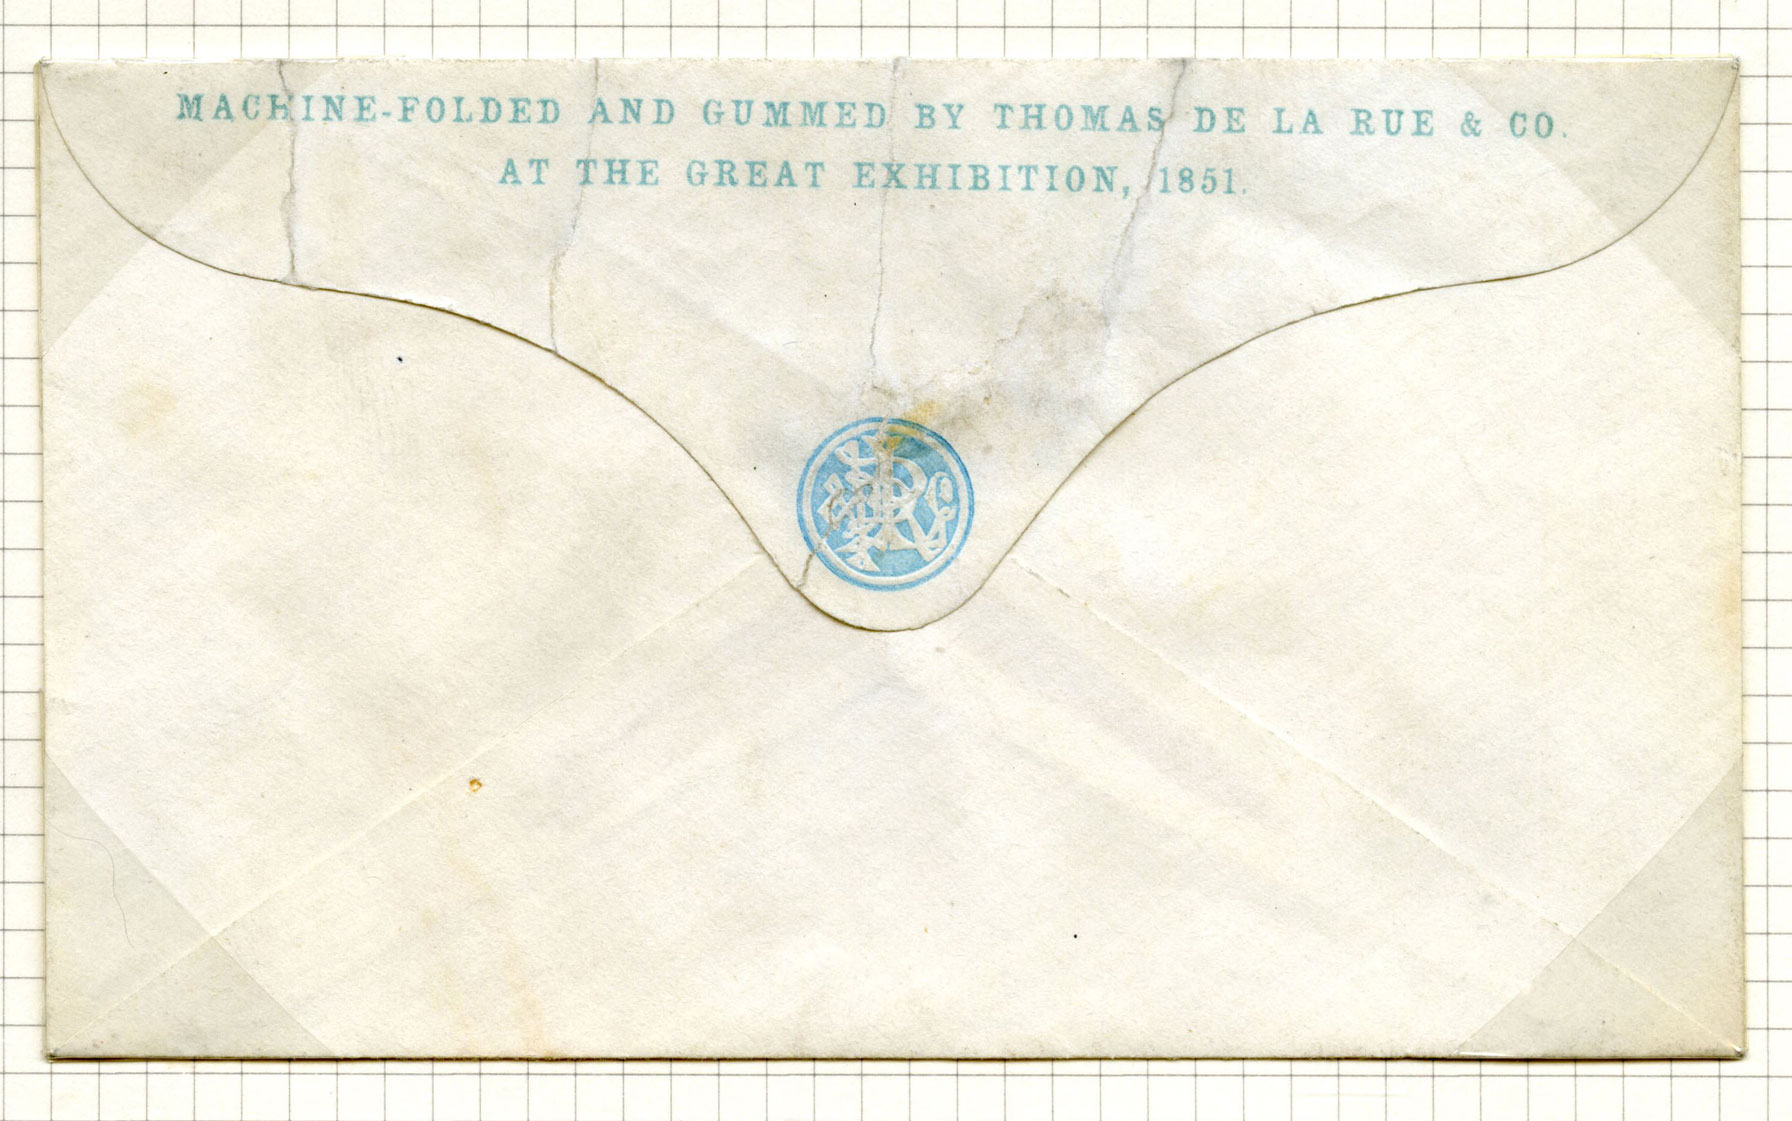 Folded envelope inscribed along the top 'Machine folded and gummed by Thomas De La Rue & Co. at The Great Exhibition, 1851'.